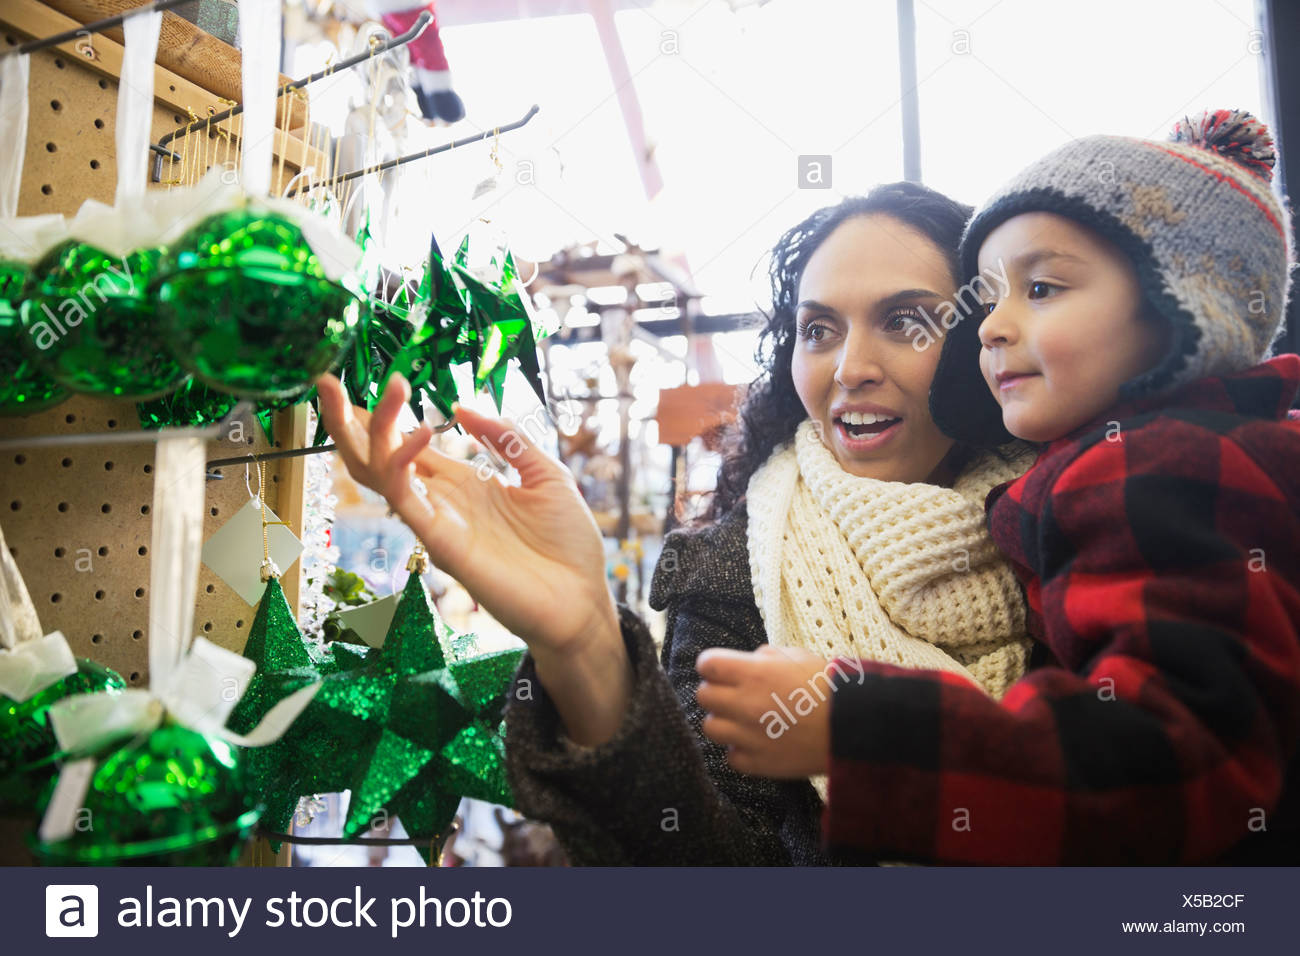 Mother and son shopping for Christmas ornaments in store - Stock Image